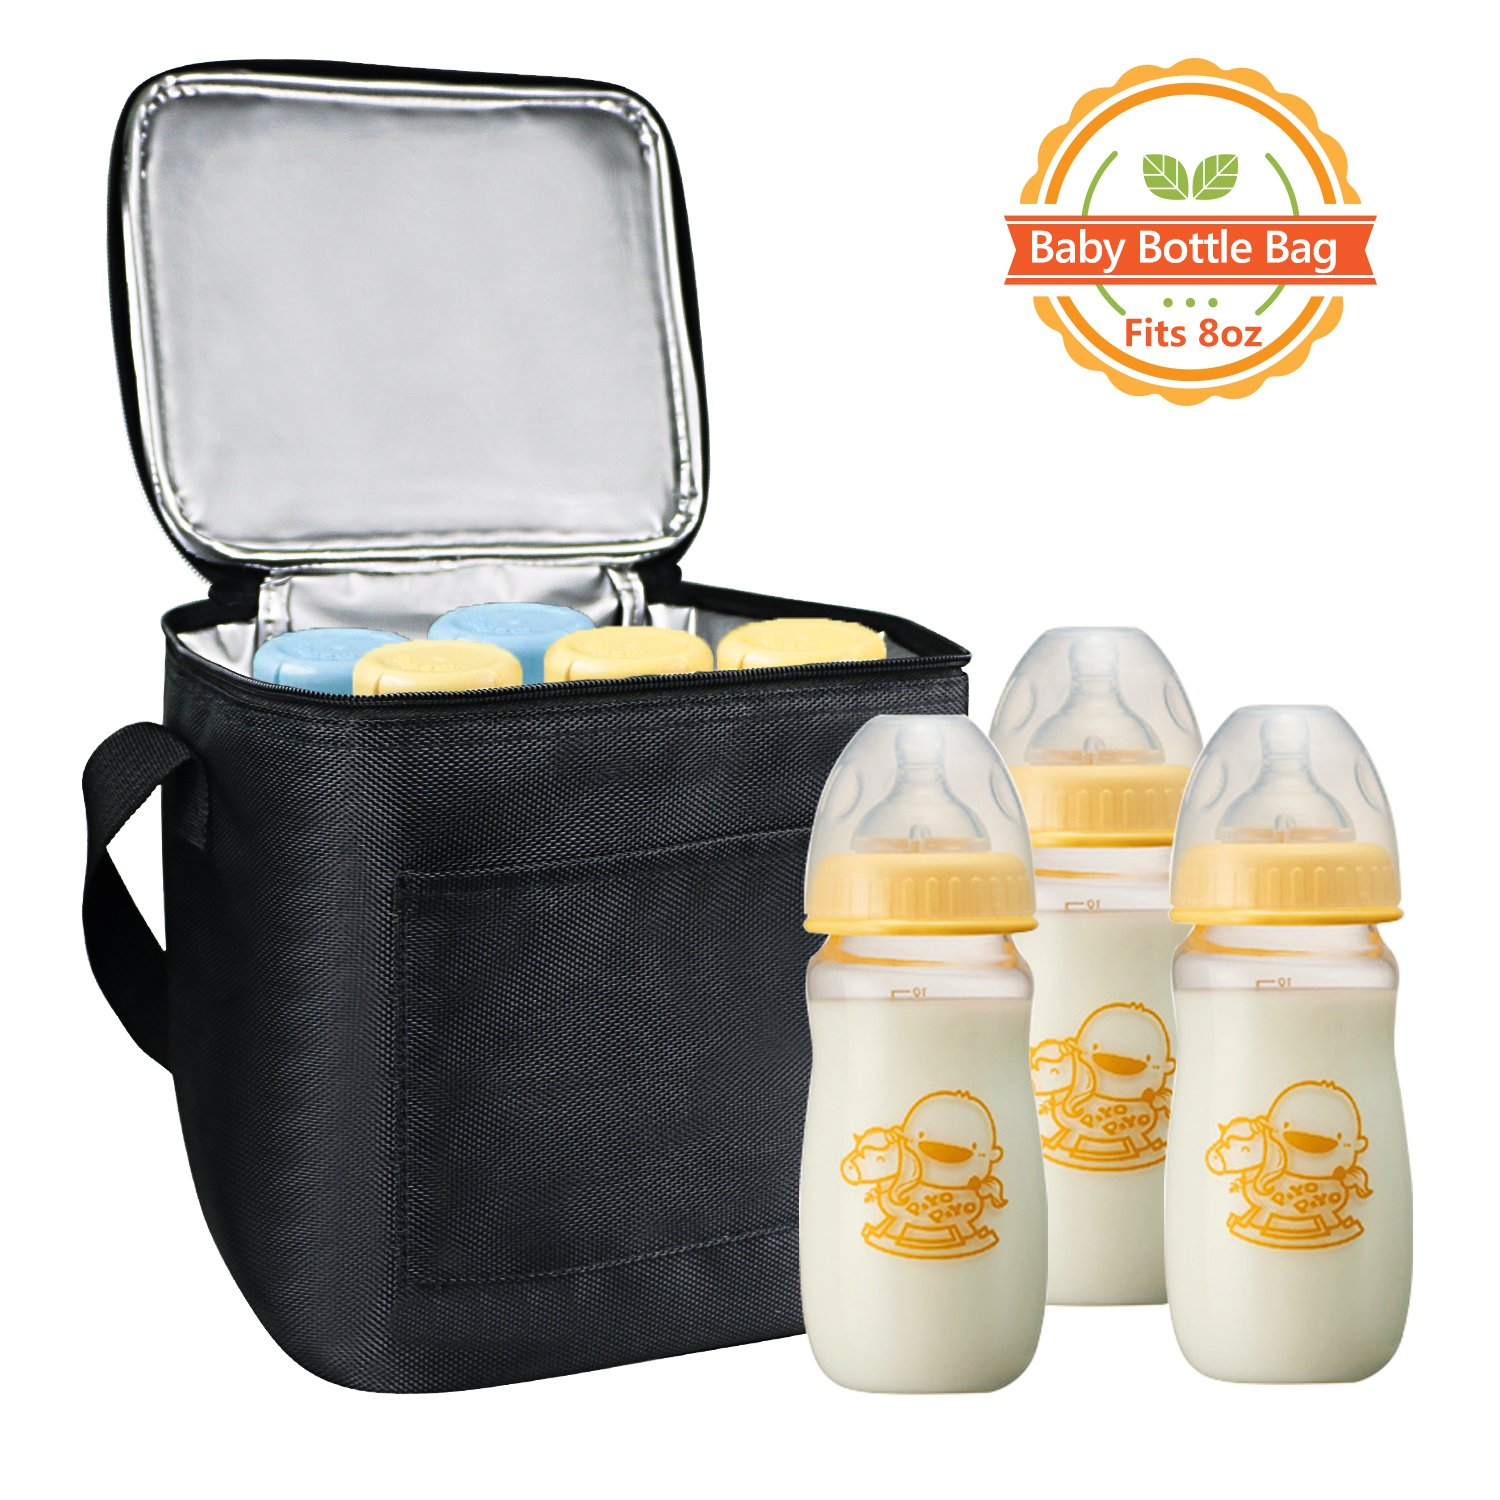 Breast Milk Baby Bottle Cooler Bag, Homga Breastmilk Insulated Cooler Tote Storage w/Air Tight Lock in The Cold & Preserve Important Nutrients (X-Large)